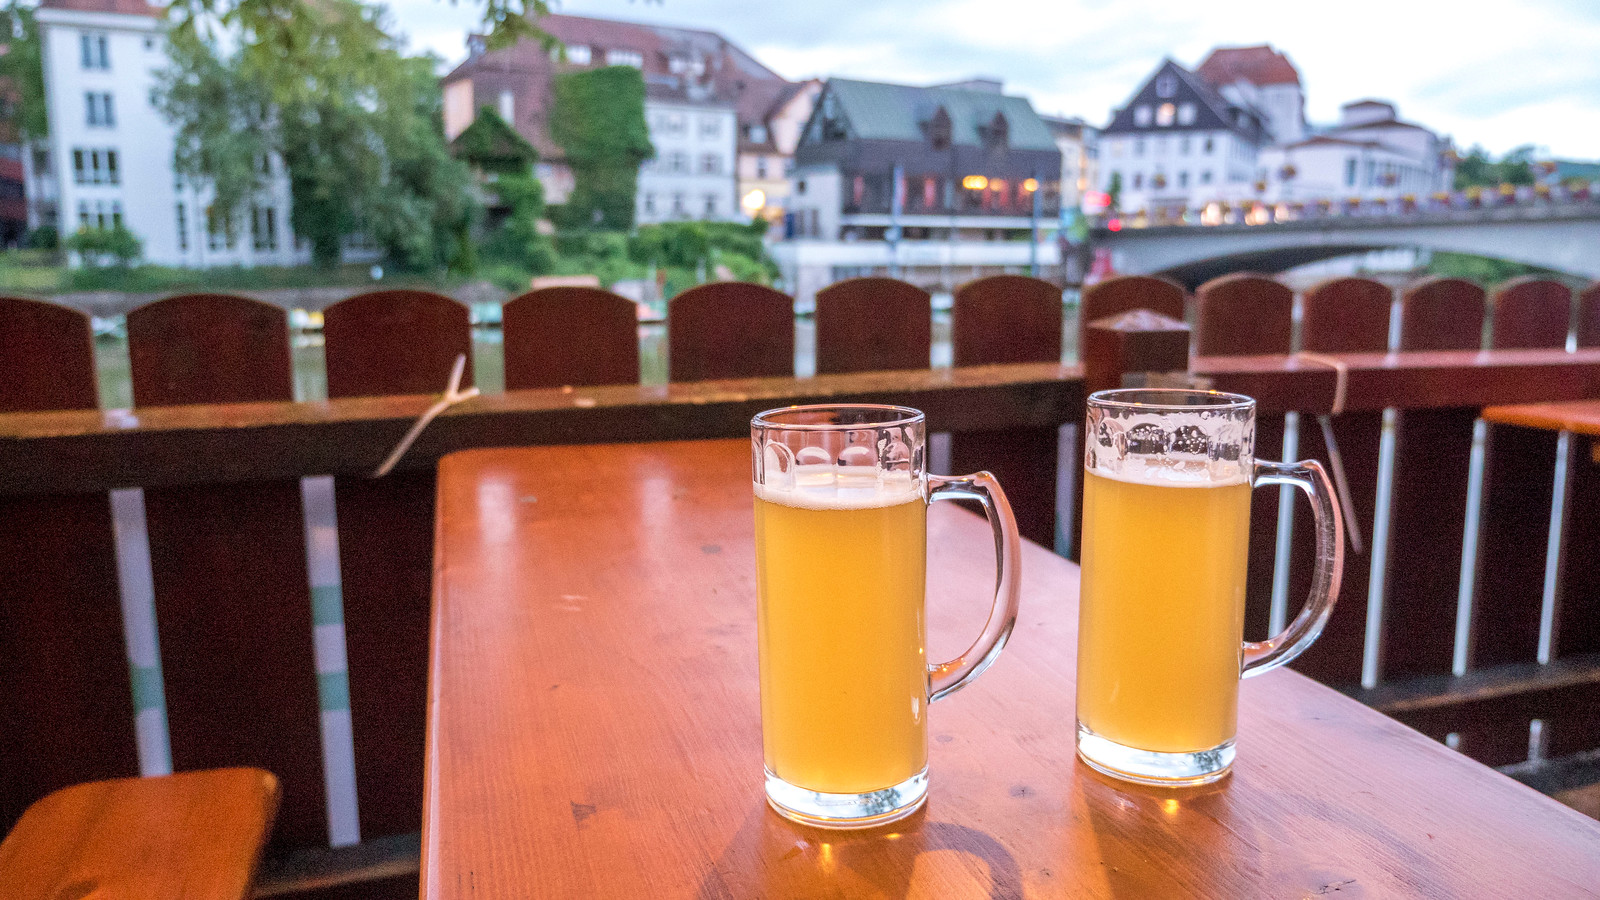 Beer at the beer garden in Tubingen. Things to do in Tubingen Germany.